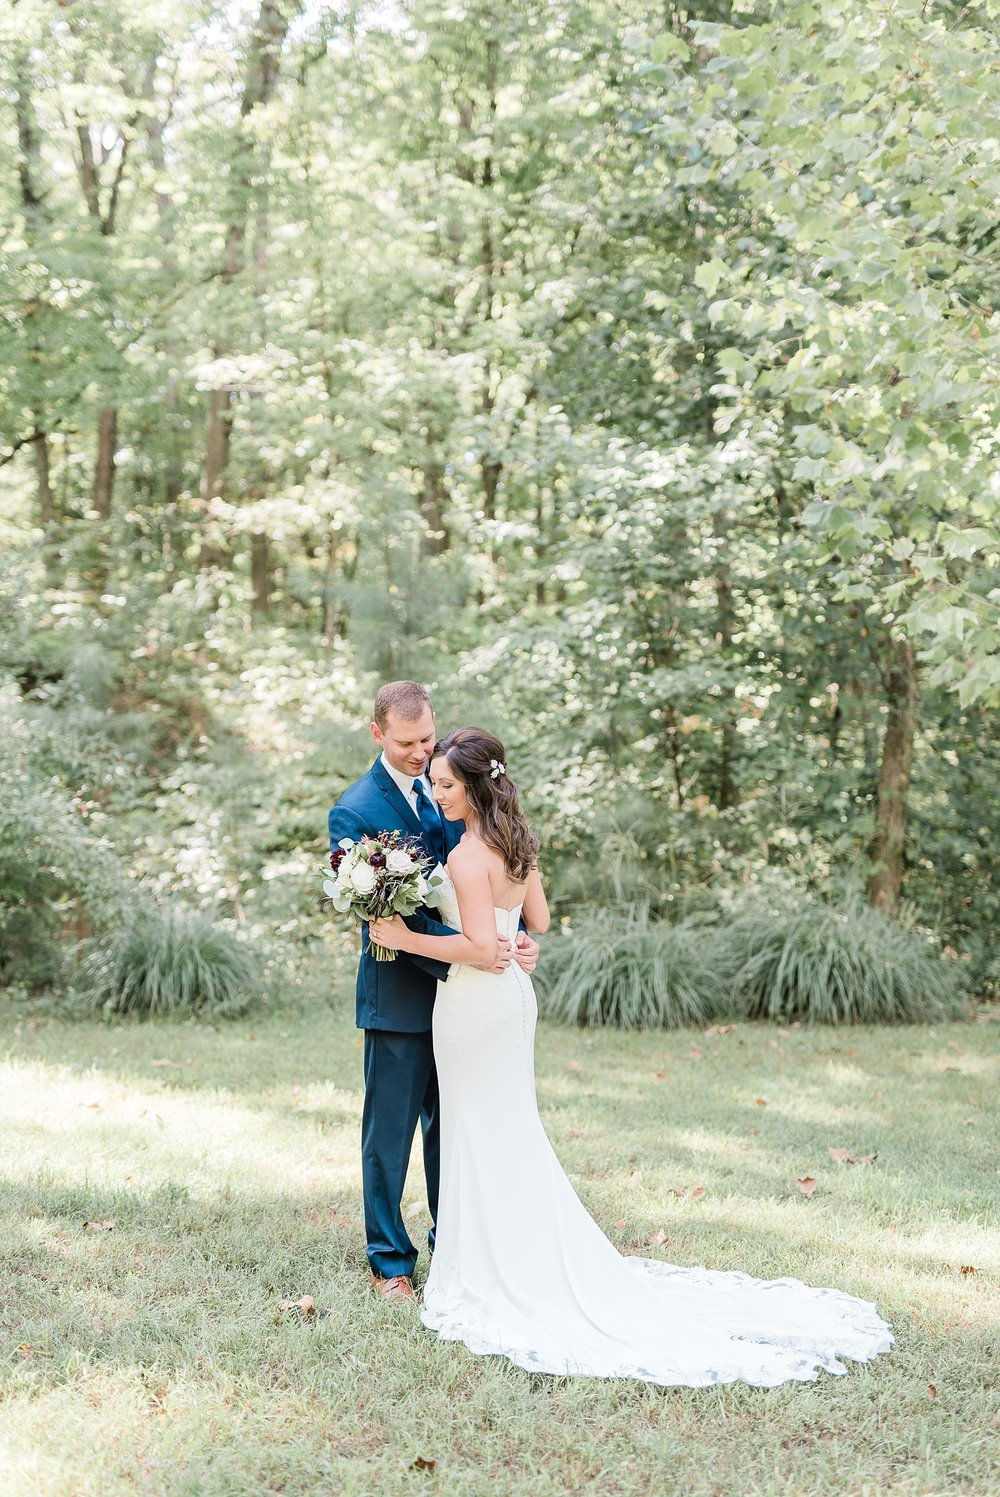 Romantic Summer Sunset Wedding Ceremony at Little Piney Lodge St. Louis Missouri by Kelsi Kliethermes Photography Fine Art Photographer_0047.jpg